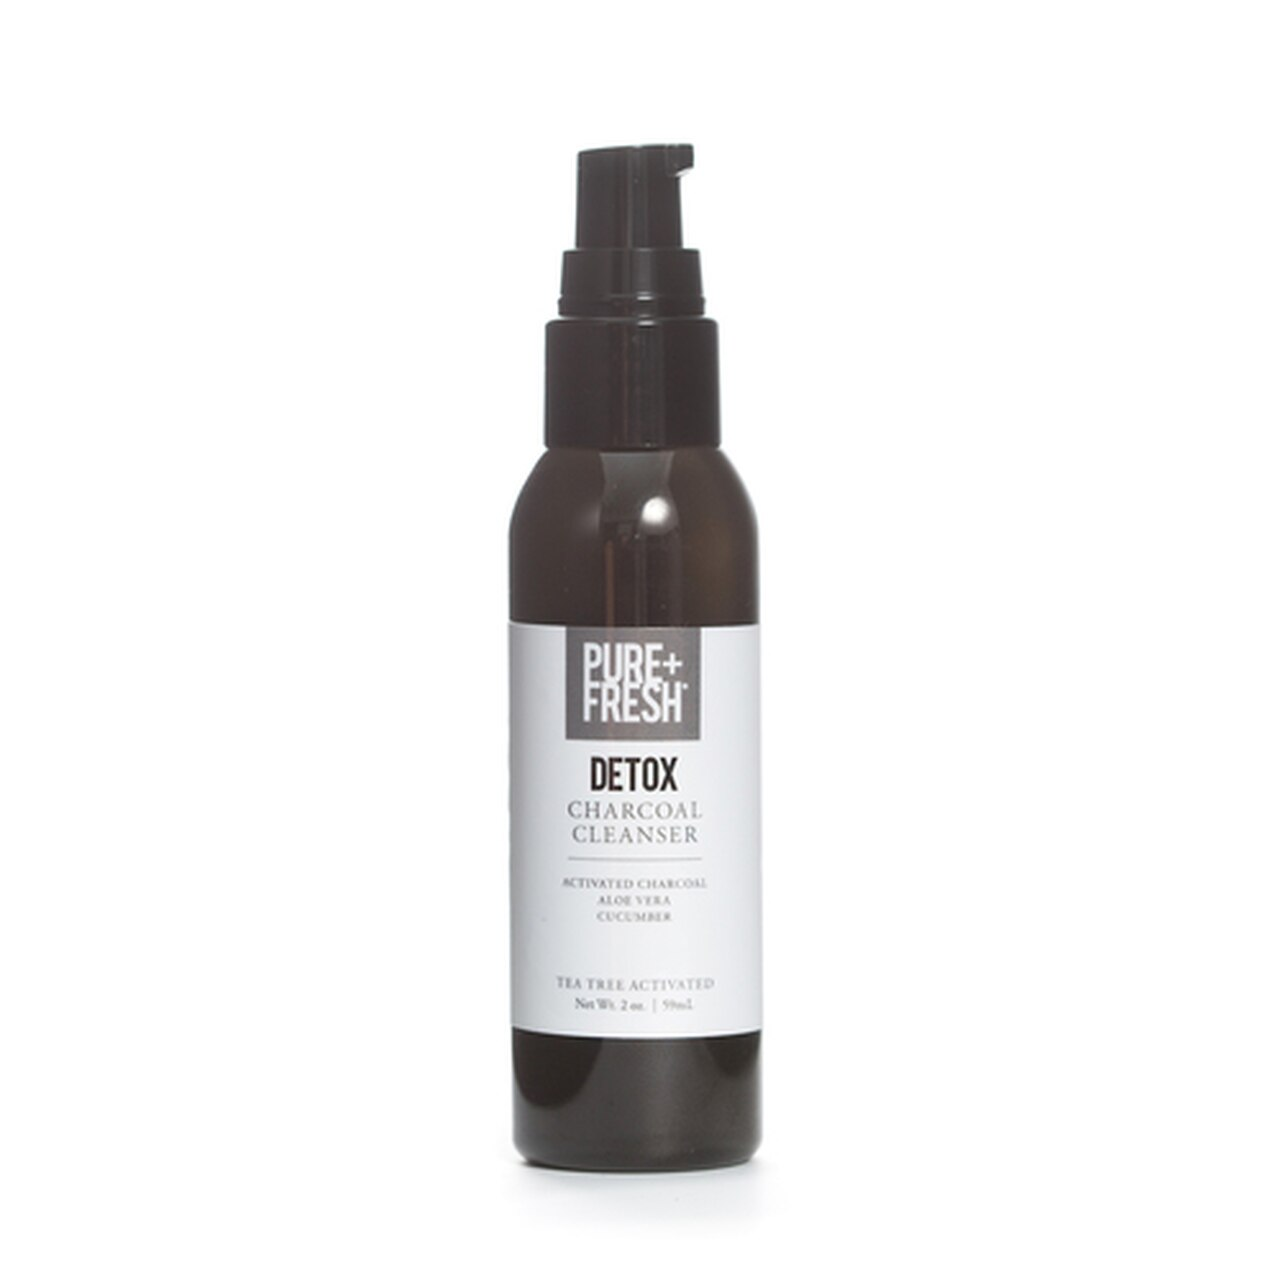 2oz Bottle of Pure+Fresh Detox Charcoal Cleanser